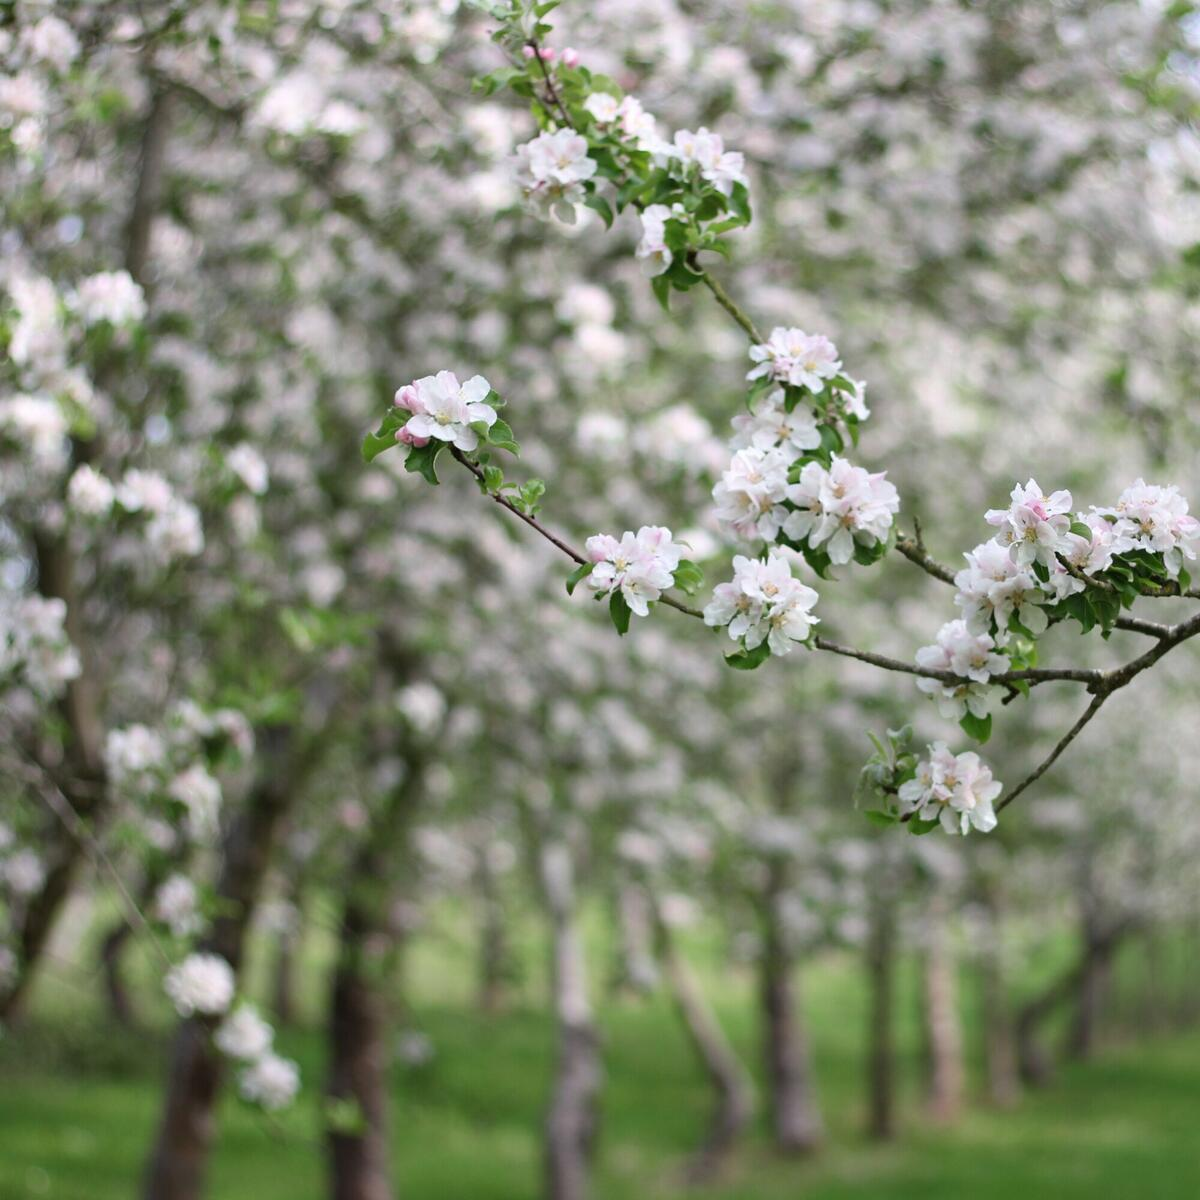 Dabinett apple Blossom about to burst in our Gameoolands Orchard.